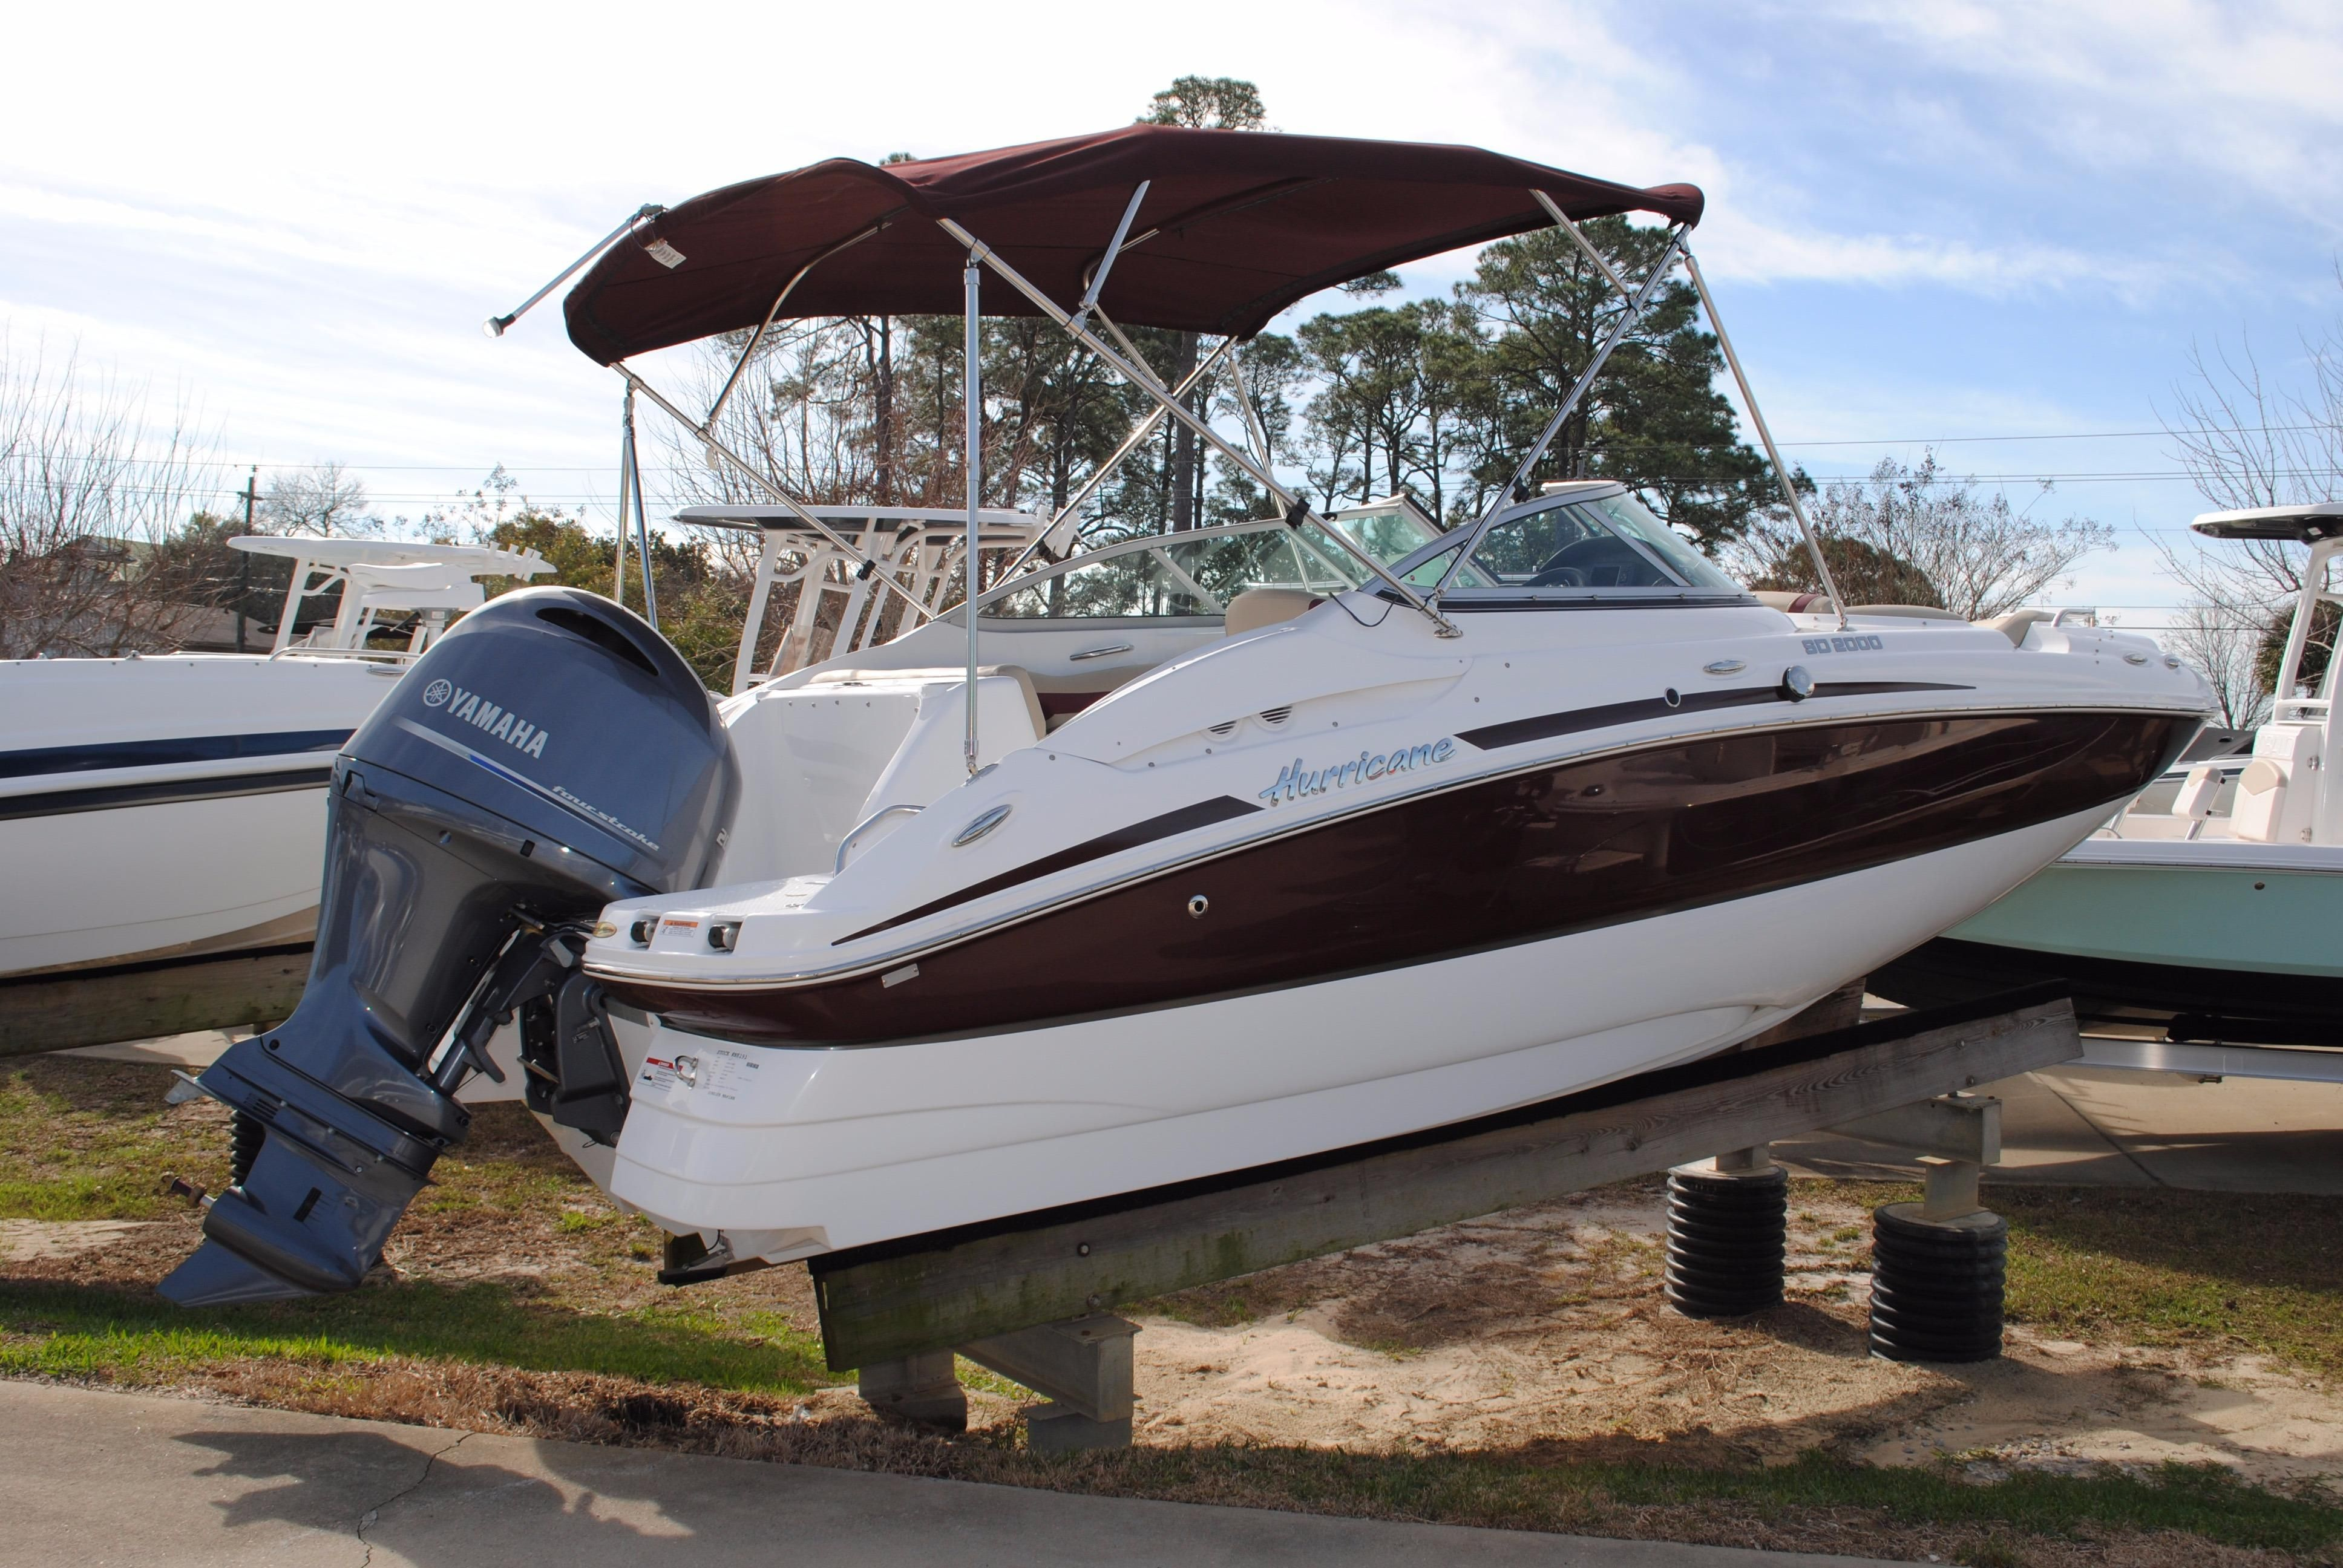 2017 hurricane sundeck 2000 outboard power boat for sale for Hurricane sundeck for sale